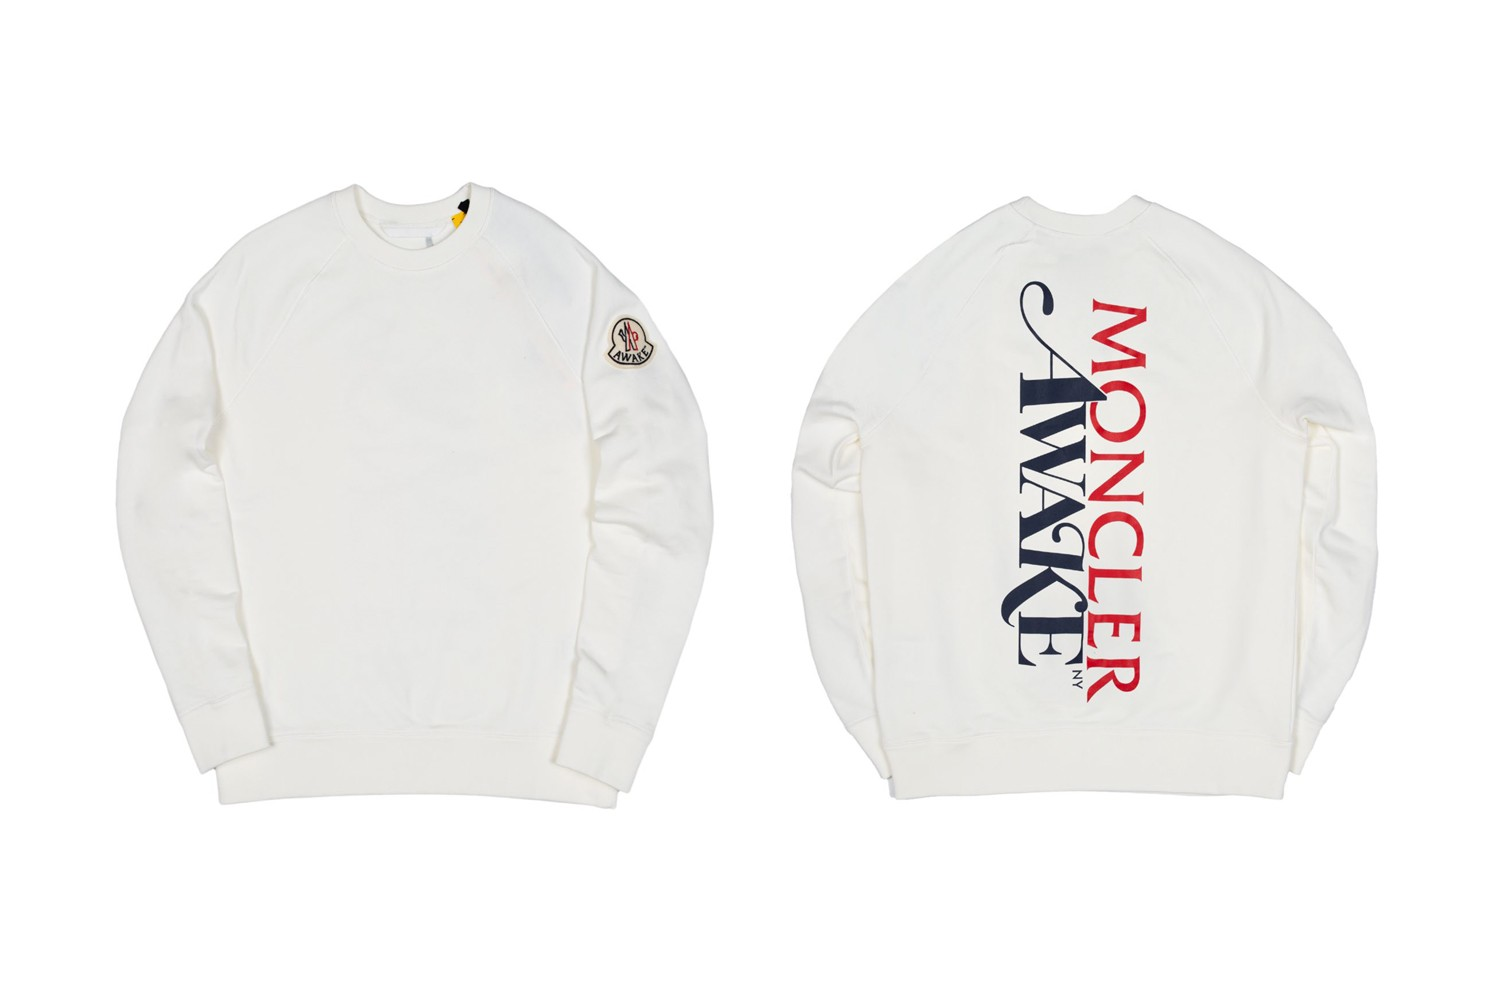 Supreme Spring/Summer 2020 Week 1 Online Release Drop List Palace Skateboards Week 3 HAVEN Afield Out Fxxking Rabbits FR2 CLOT LIFUL Fucking Awesome Awake NY Moncler 1952 Genius